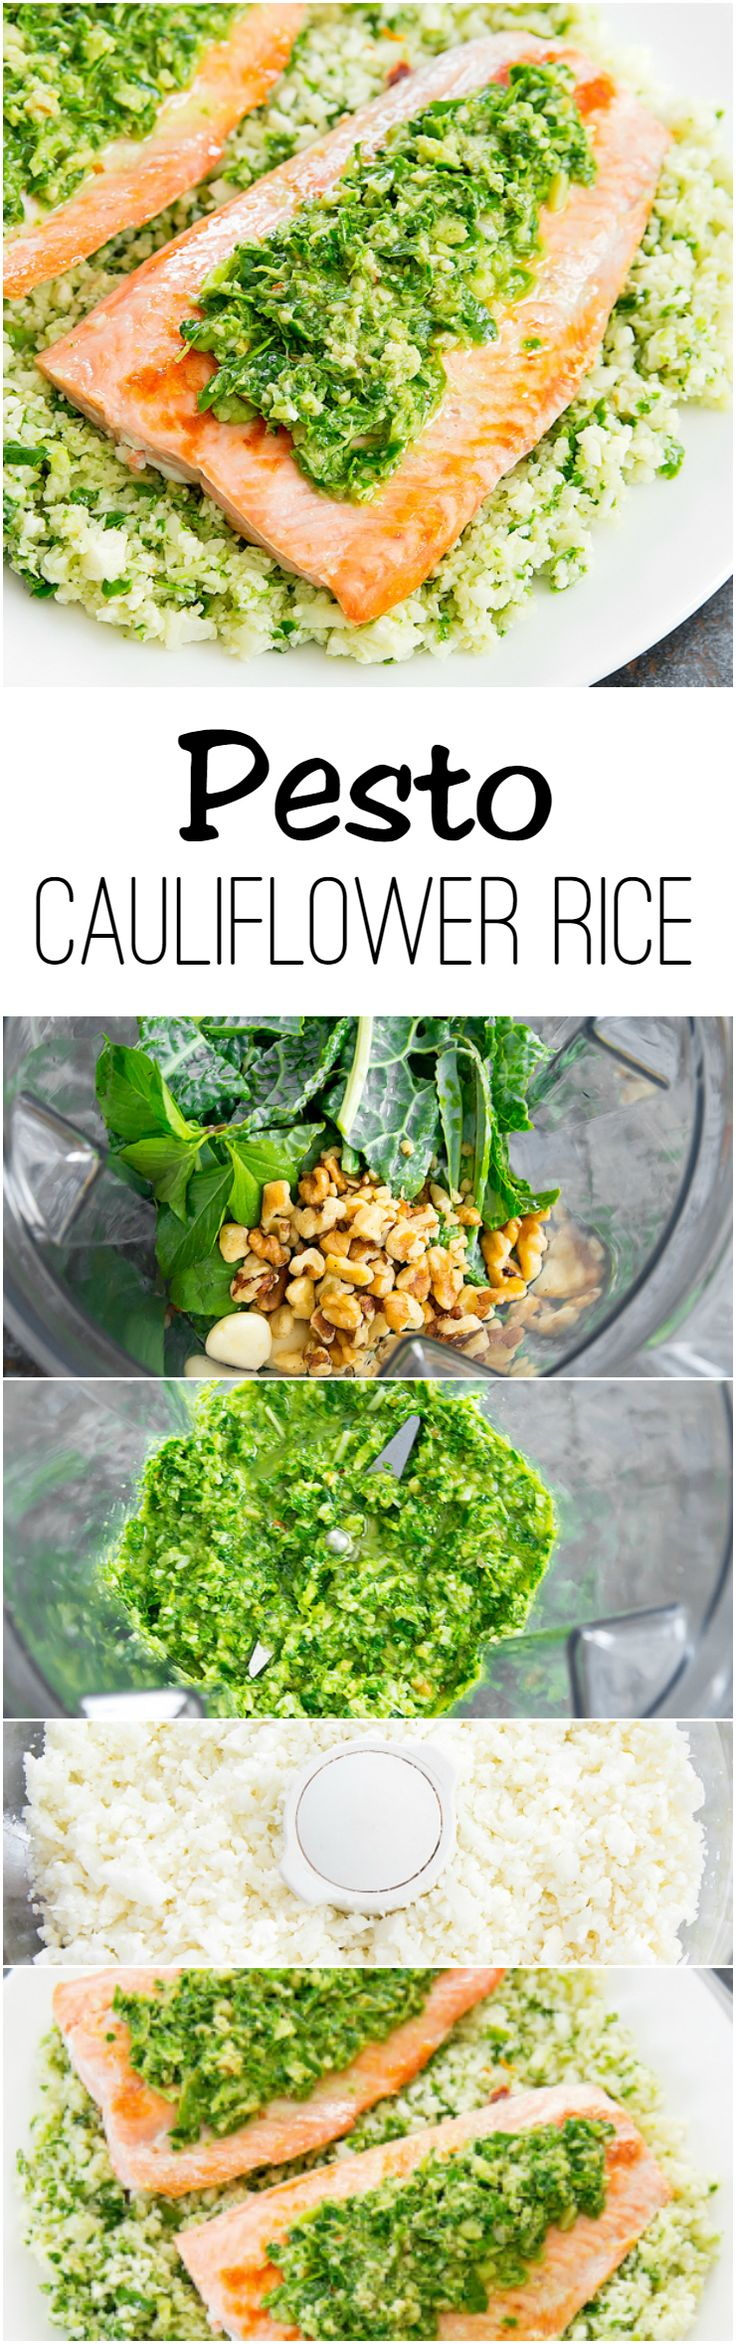 Pesto Cauliflower Rice with Salmon. This rice substitute is so easy to make and pairs well with almost any entree.